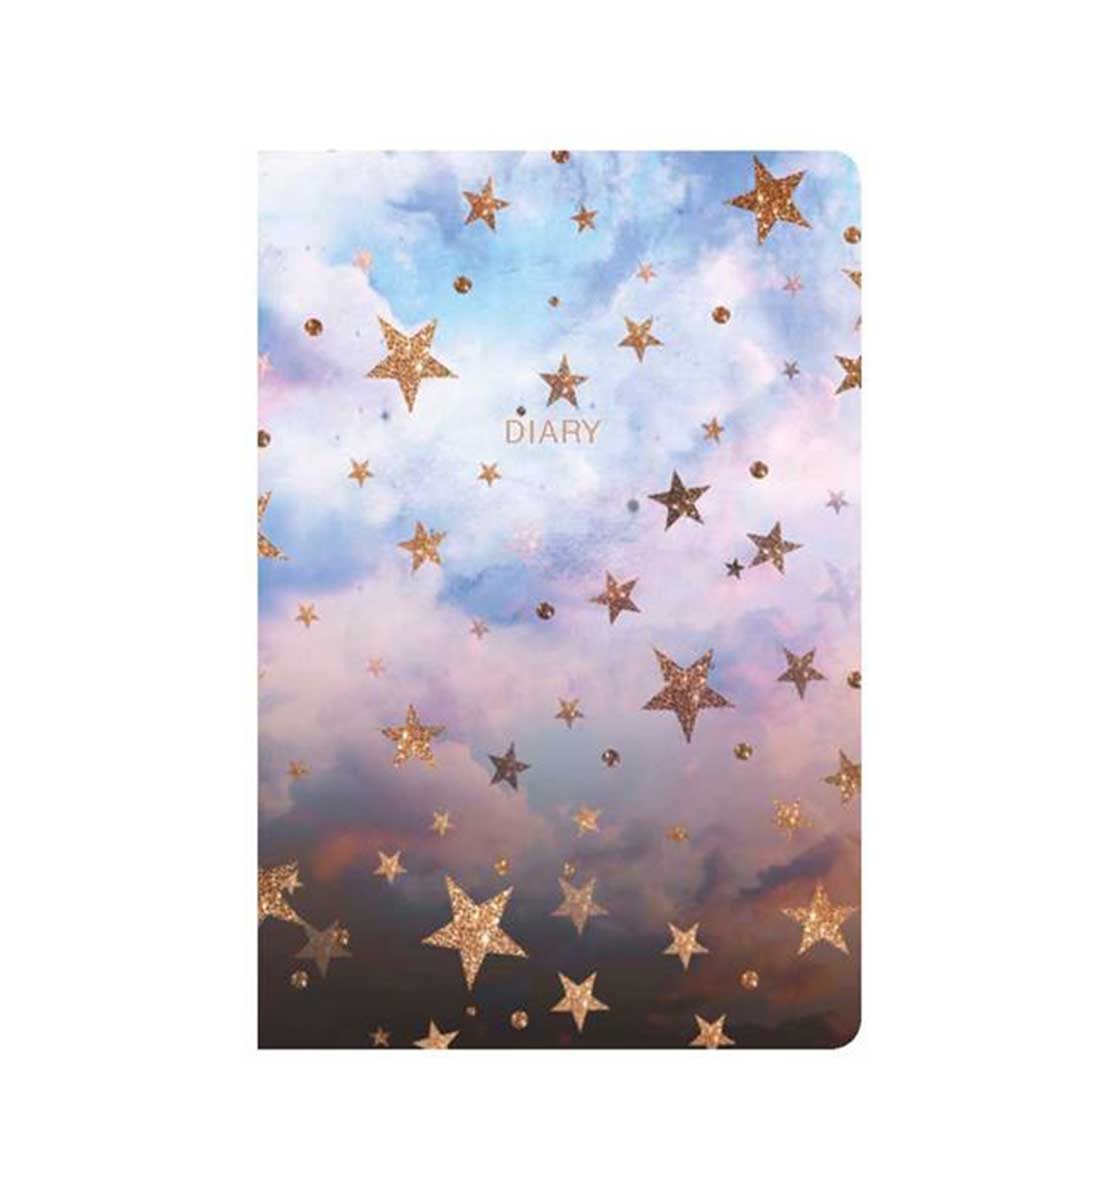 Stationery Gifts Amp Essentials Calendars Diaries Amp More